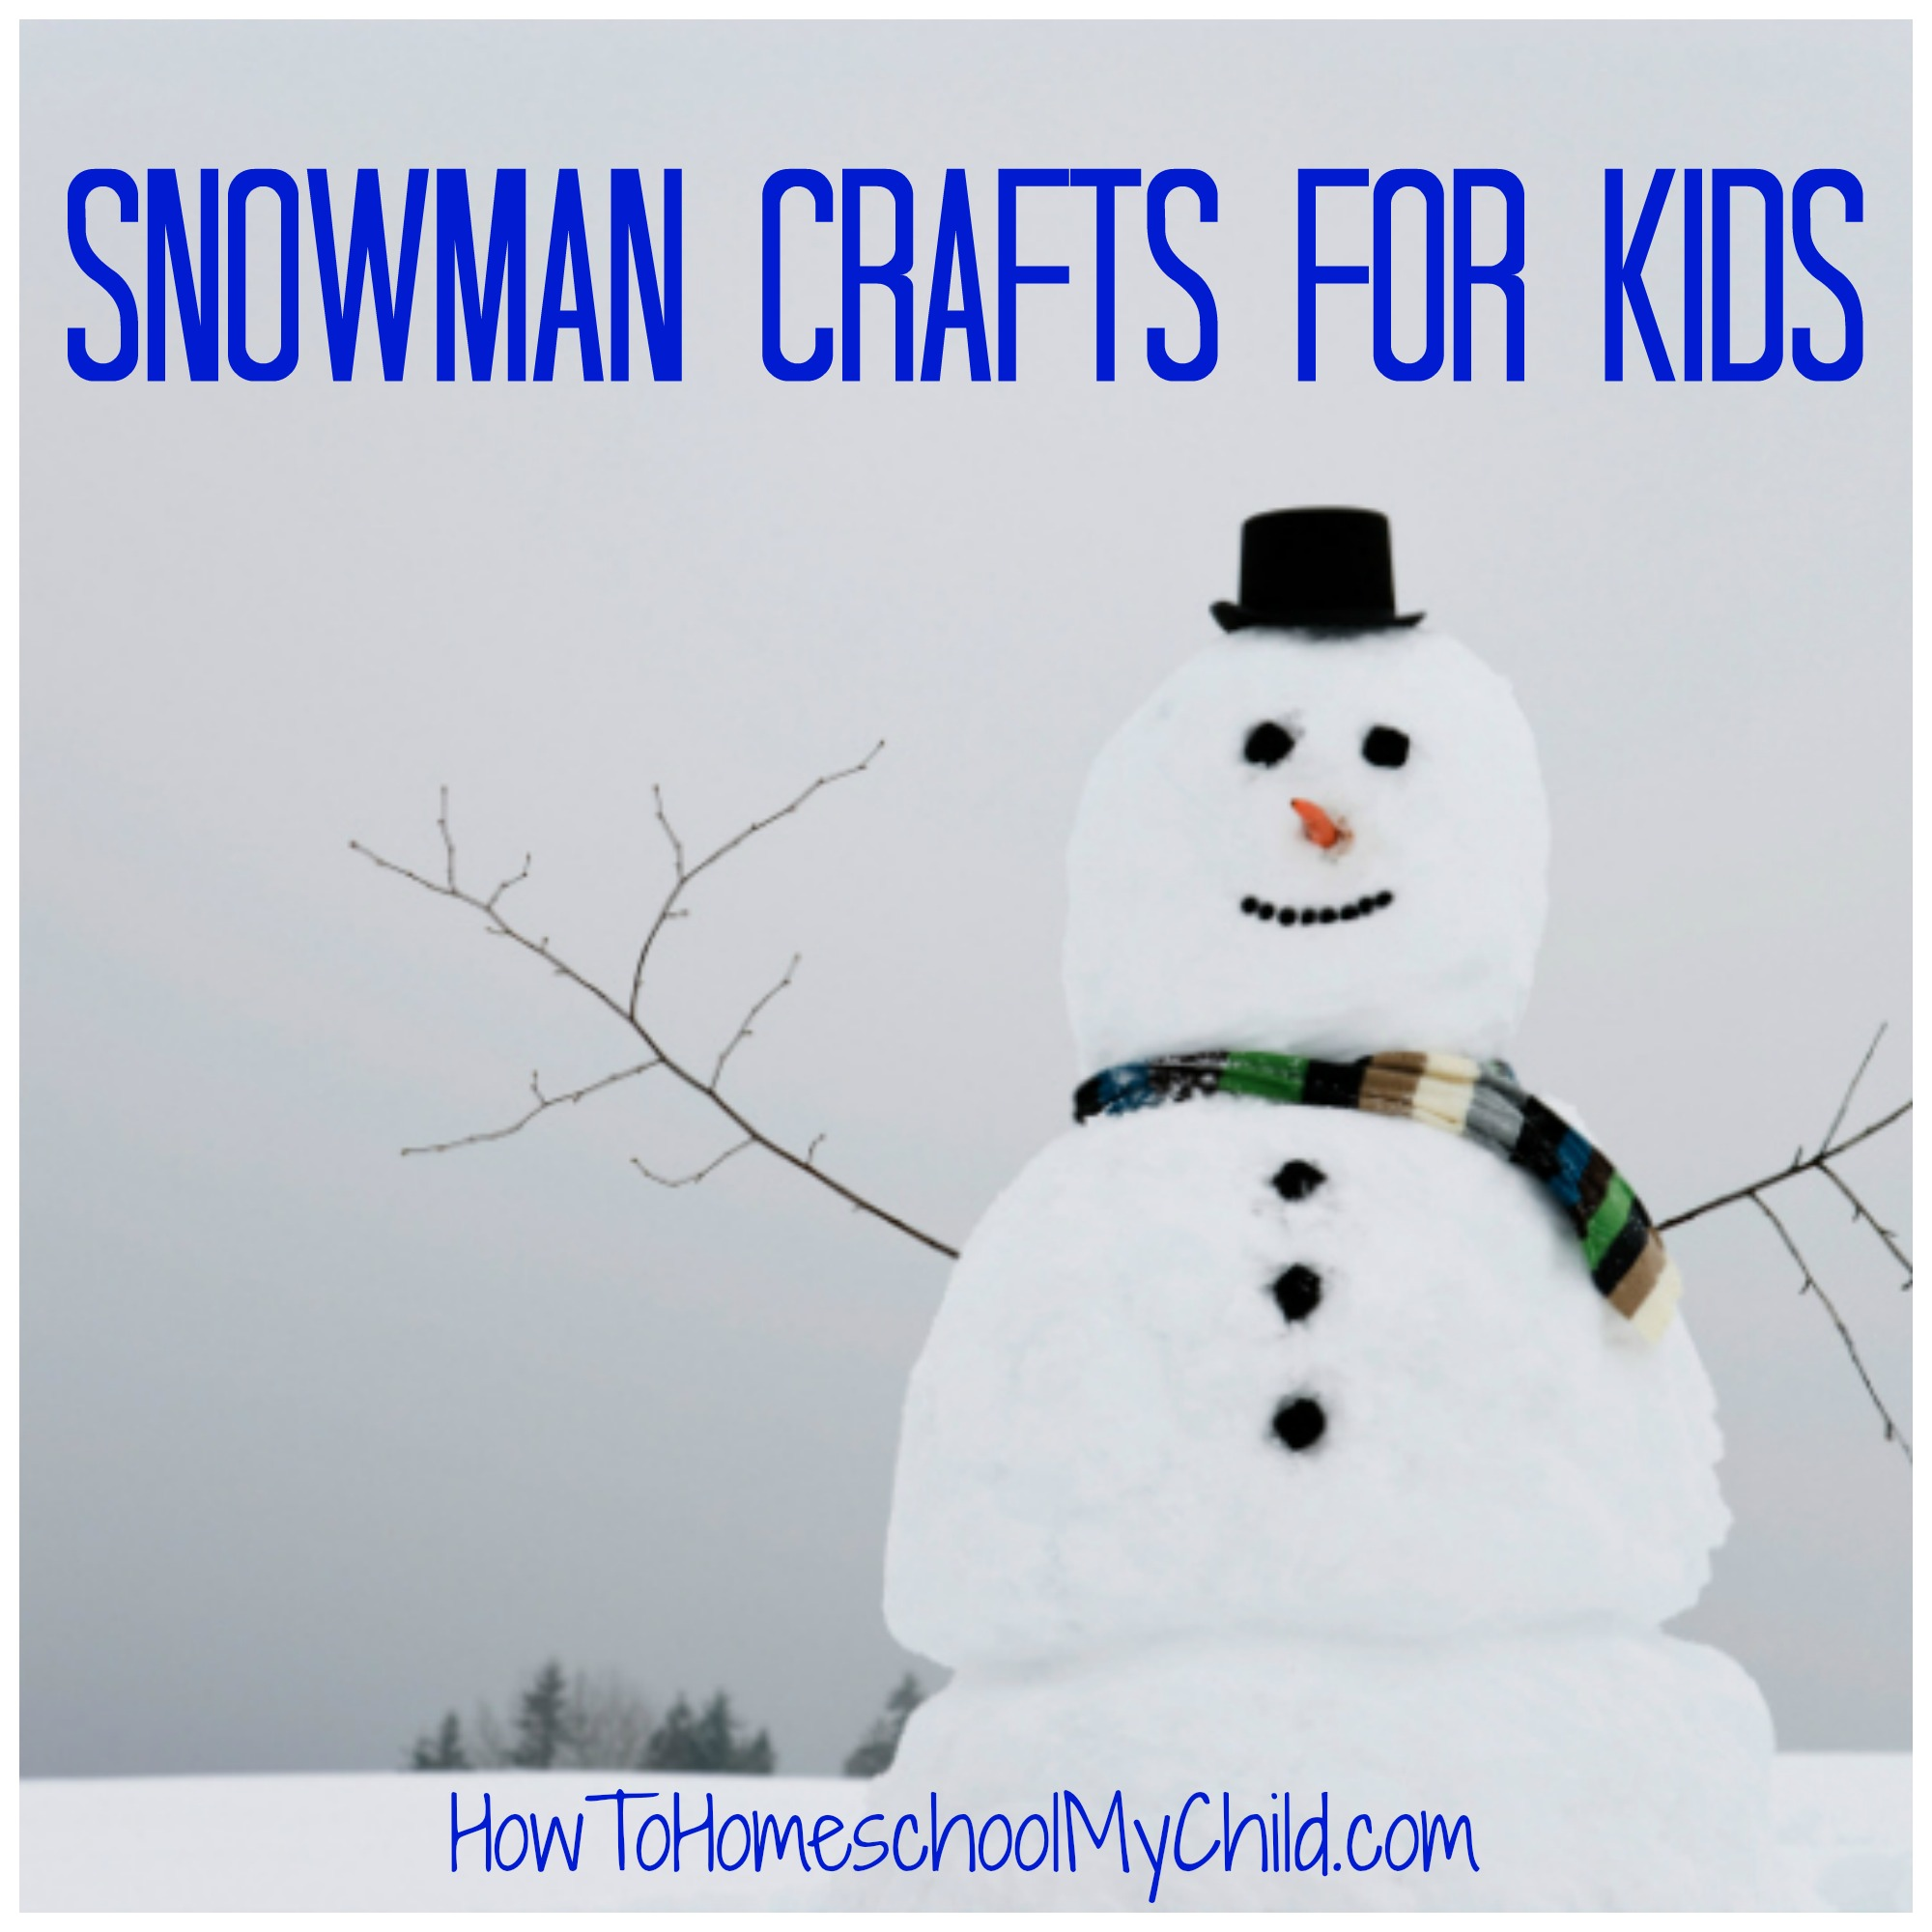 snowman crafts for kids ~ from HowToHomeschoolMyChild.com